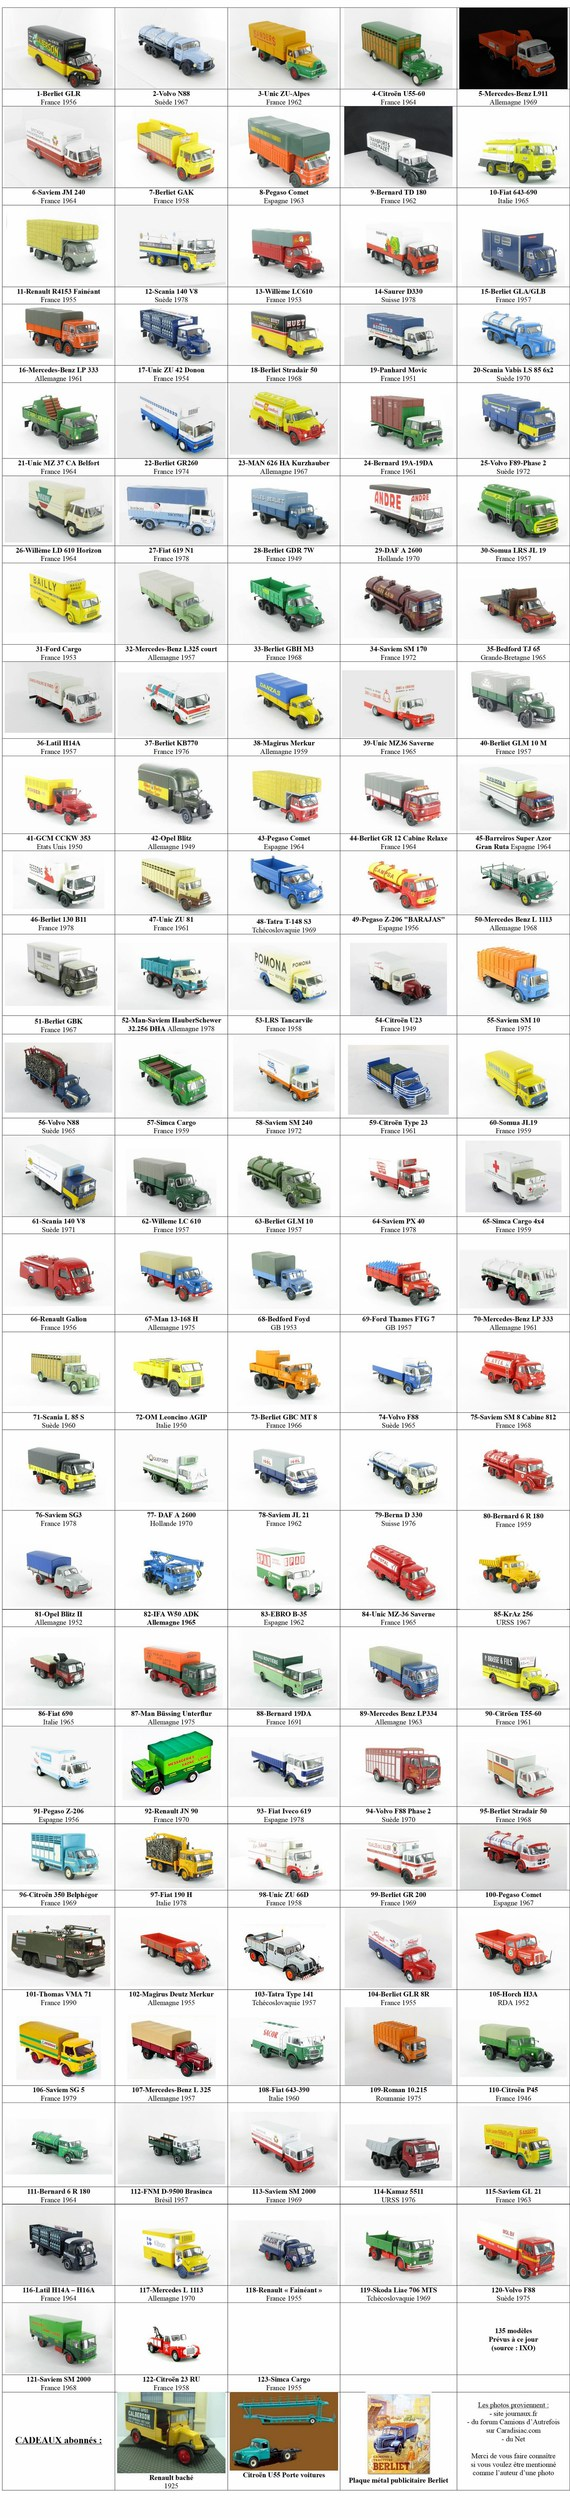 Poster camions 36 2Mo